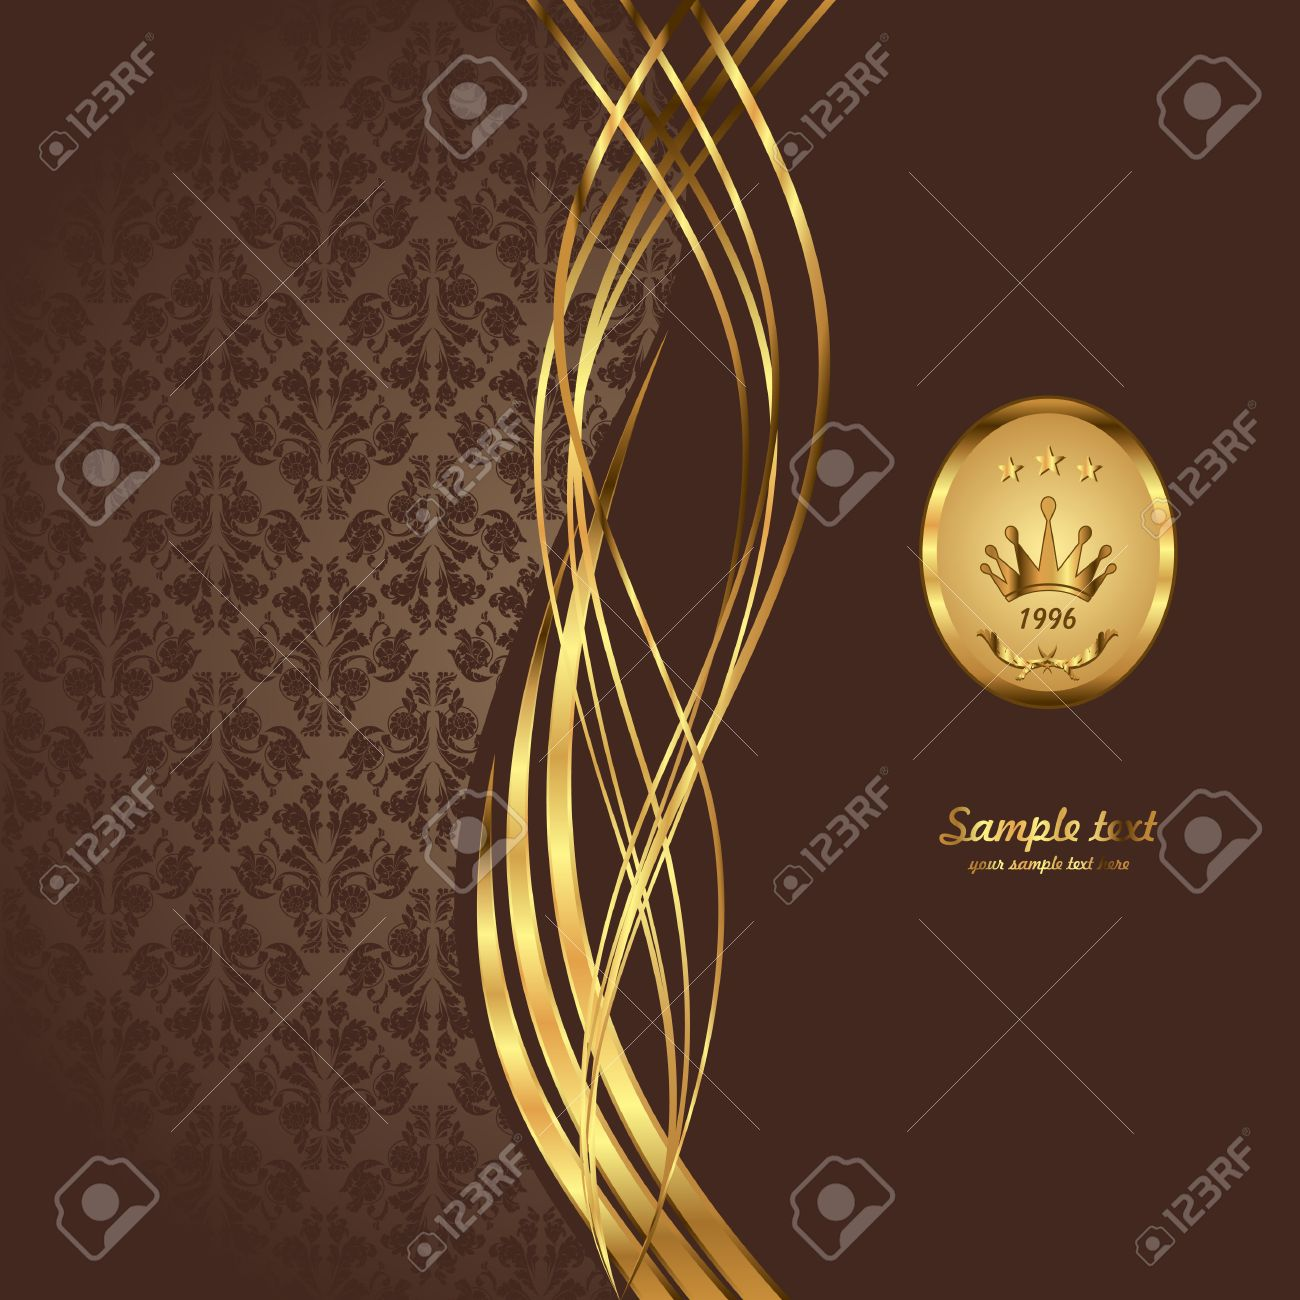 Gold background. Royal   background. Vintage style. Stock Vector - 7979705